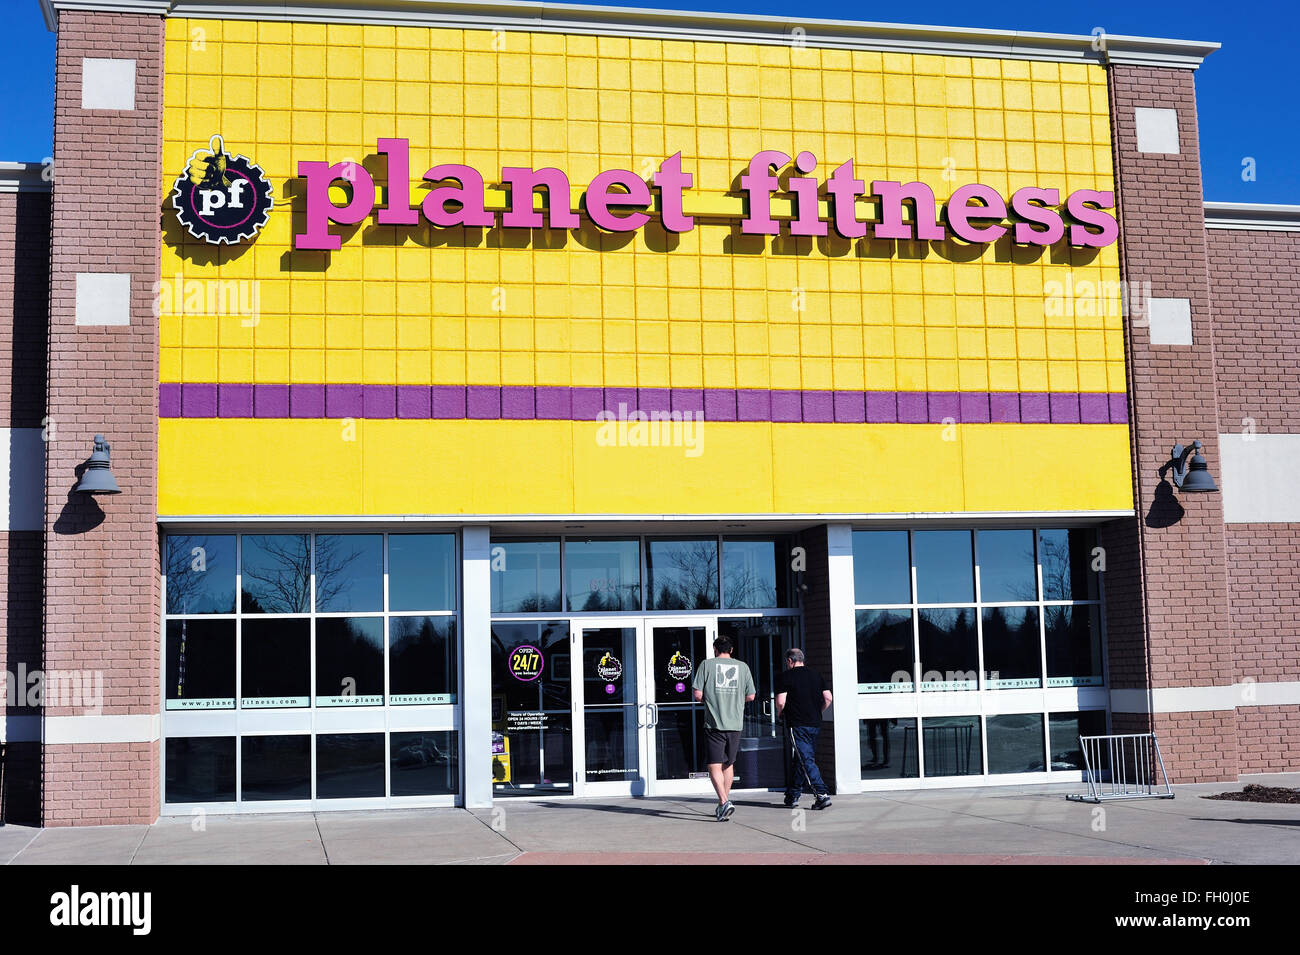 A Planet Fitness franchise location in the suburban Chicago community of Elgin, Illinois, USA. - Stock Image